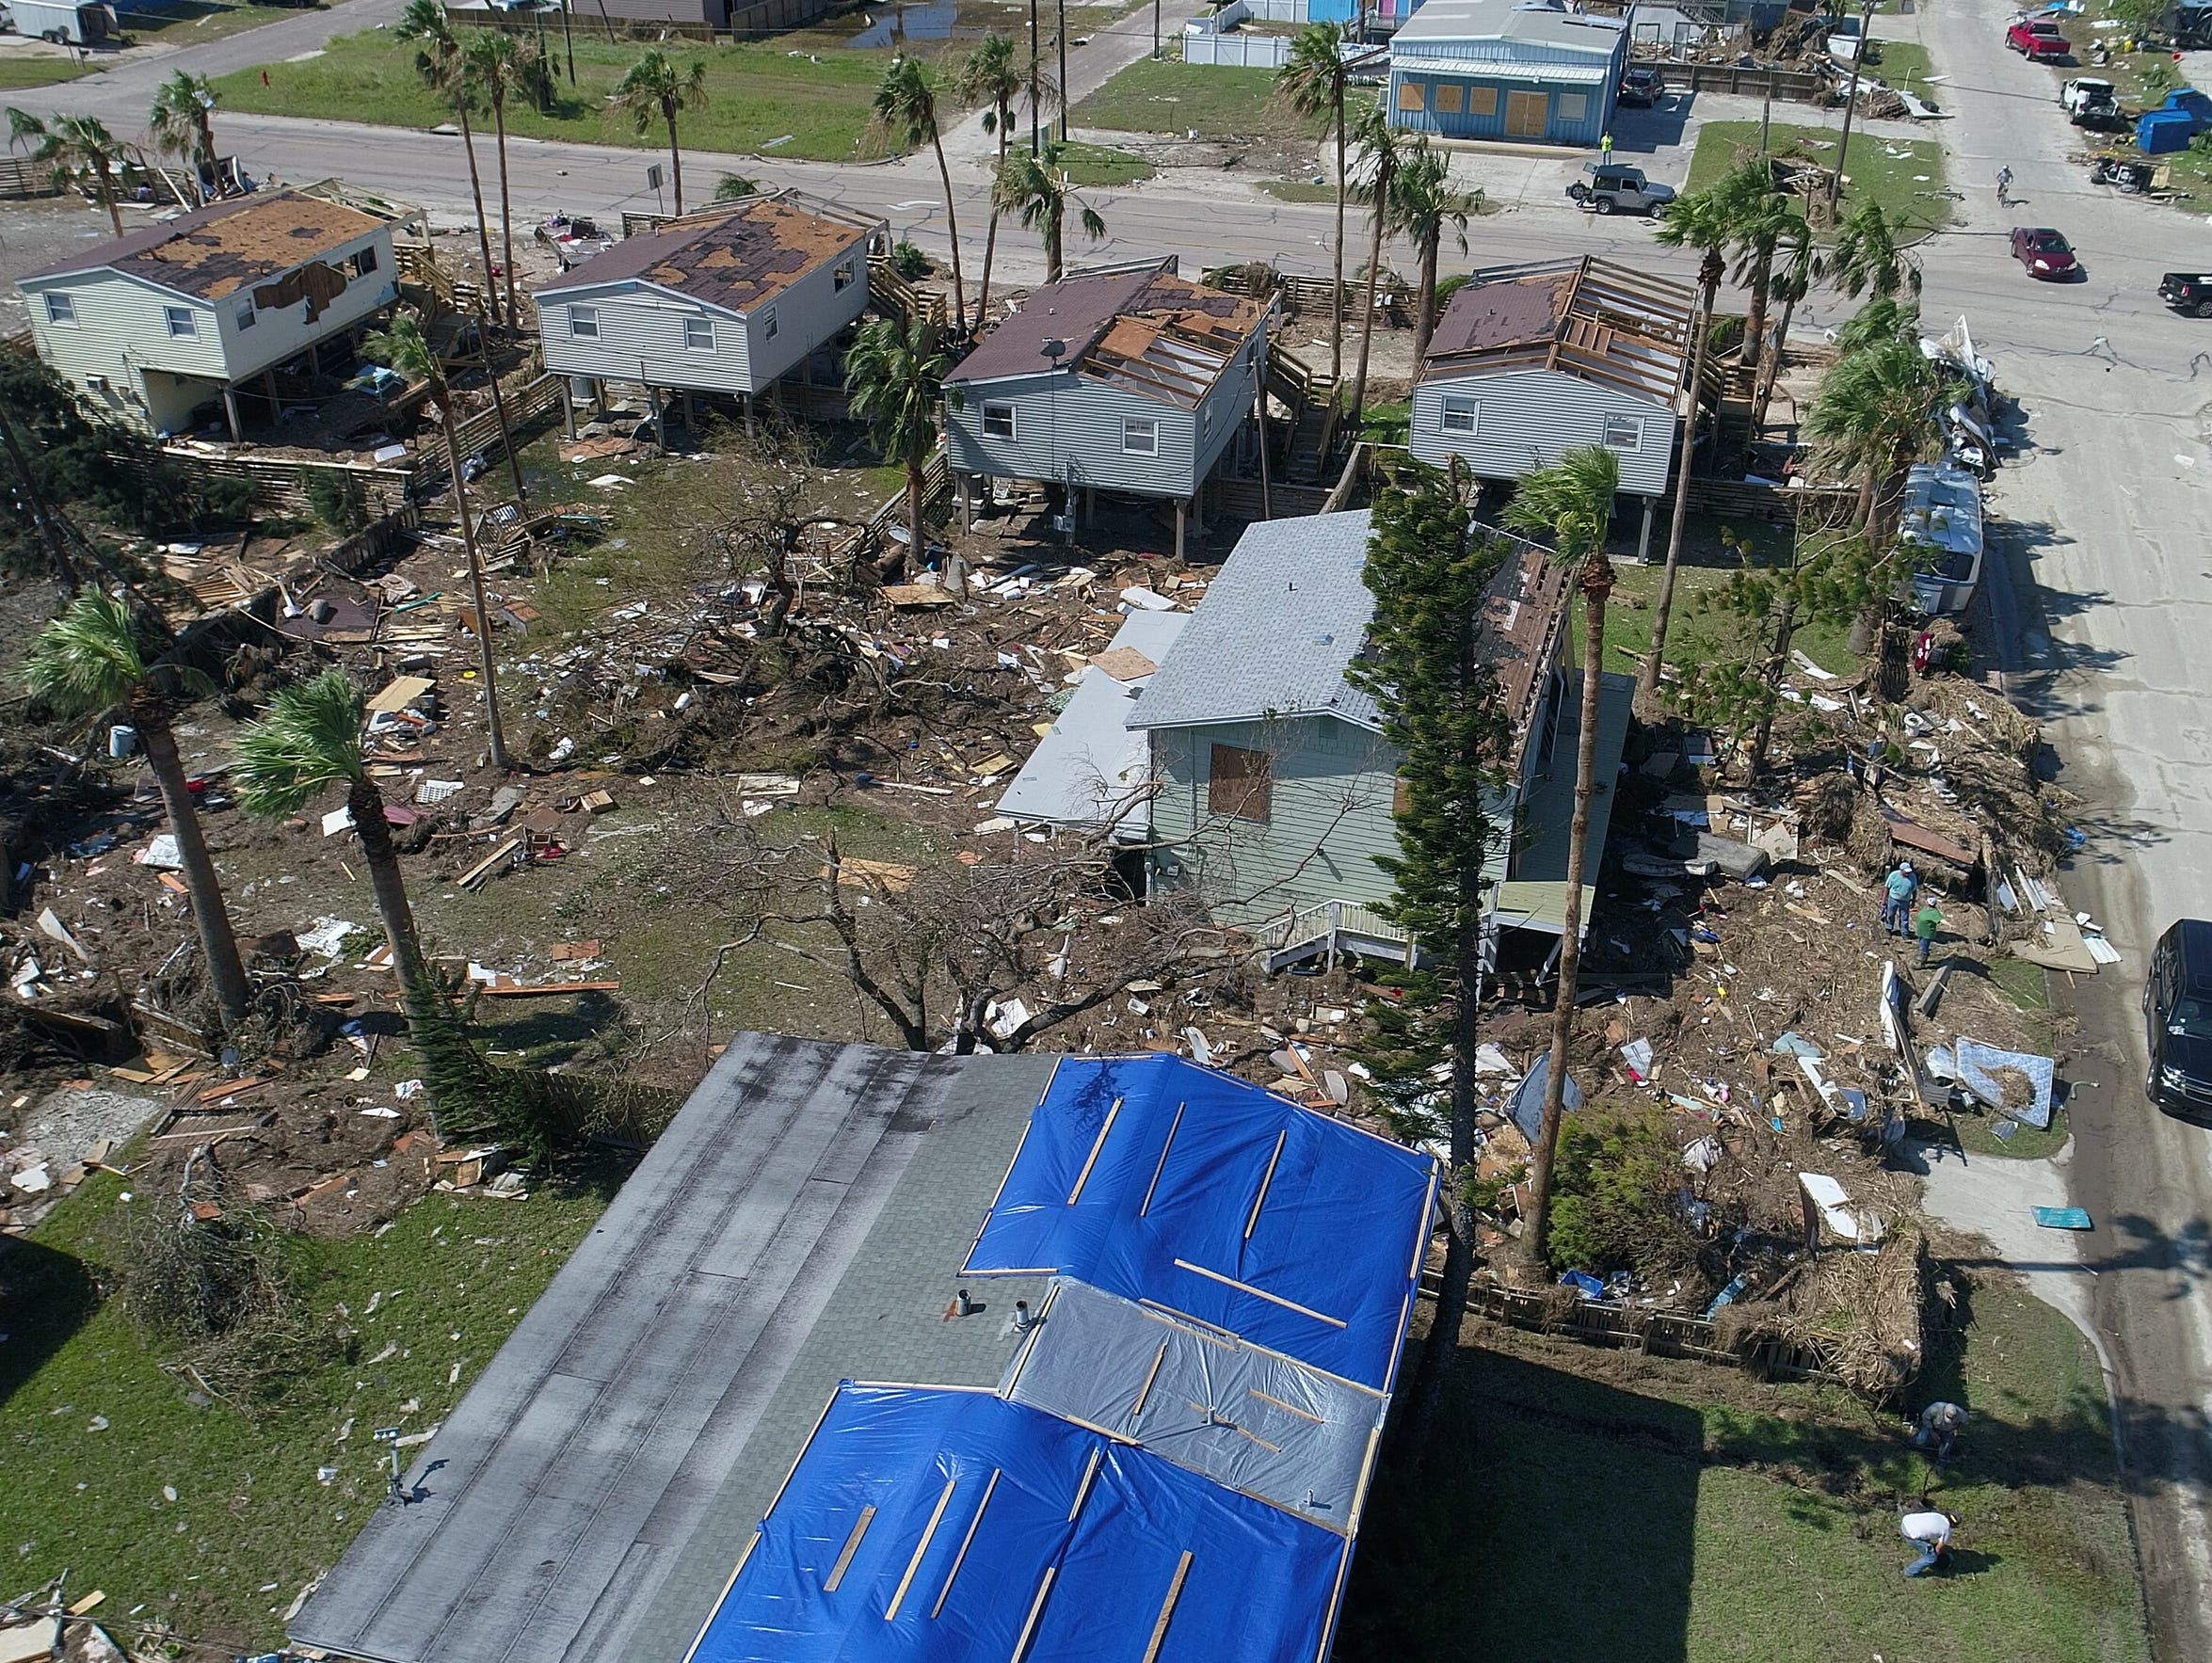 This aerial view of Port Aransas shows mass devastation following Hurricane Harvey. How the city rebuilds could determine how it defines its identity in the aftermath of the hurricane.